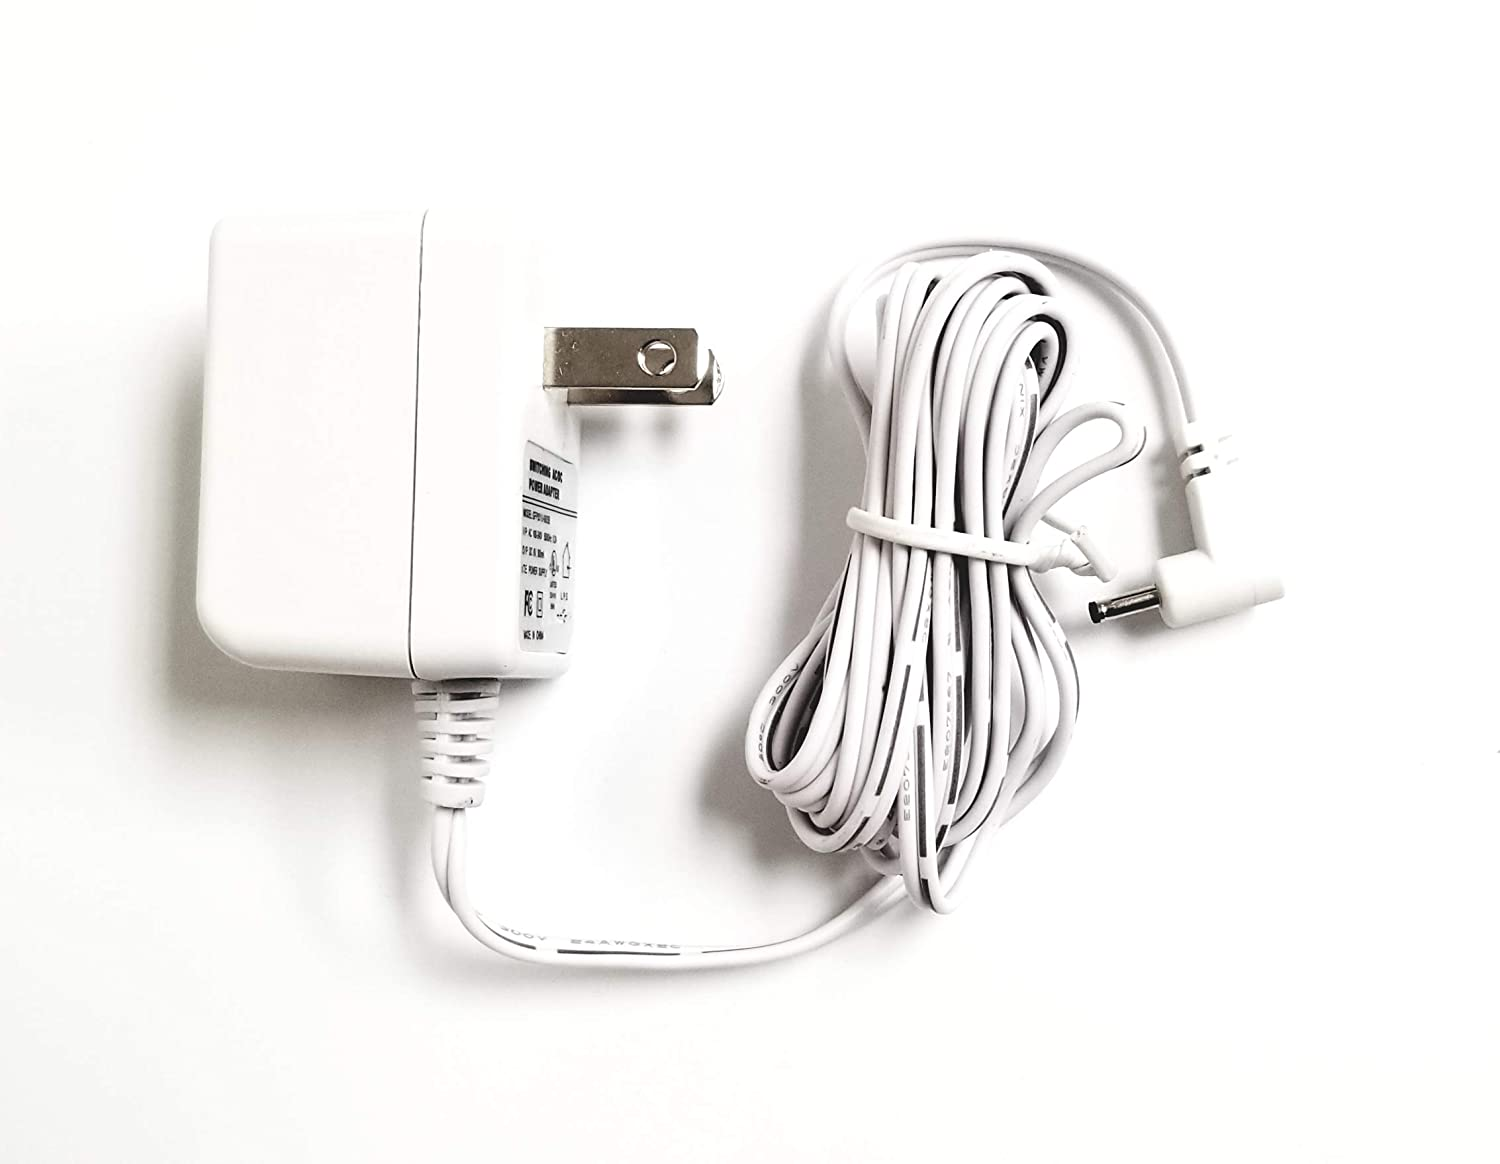 Shira Ac Power Adapter Charger BARREL PLUG STYLE ONLY for Motorola Video Baby Monitor Mbp18 Mbp25 Mbp26 mbp27t MBP33 MBP36 Mbp34 Mbp35 Mbp41 Mbp43 FOR THE PARENT UNIT ONLY WHITE Shira TM